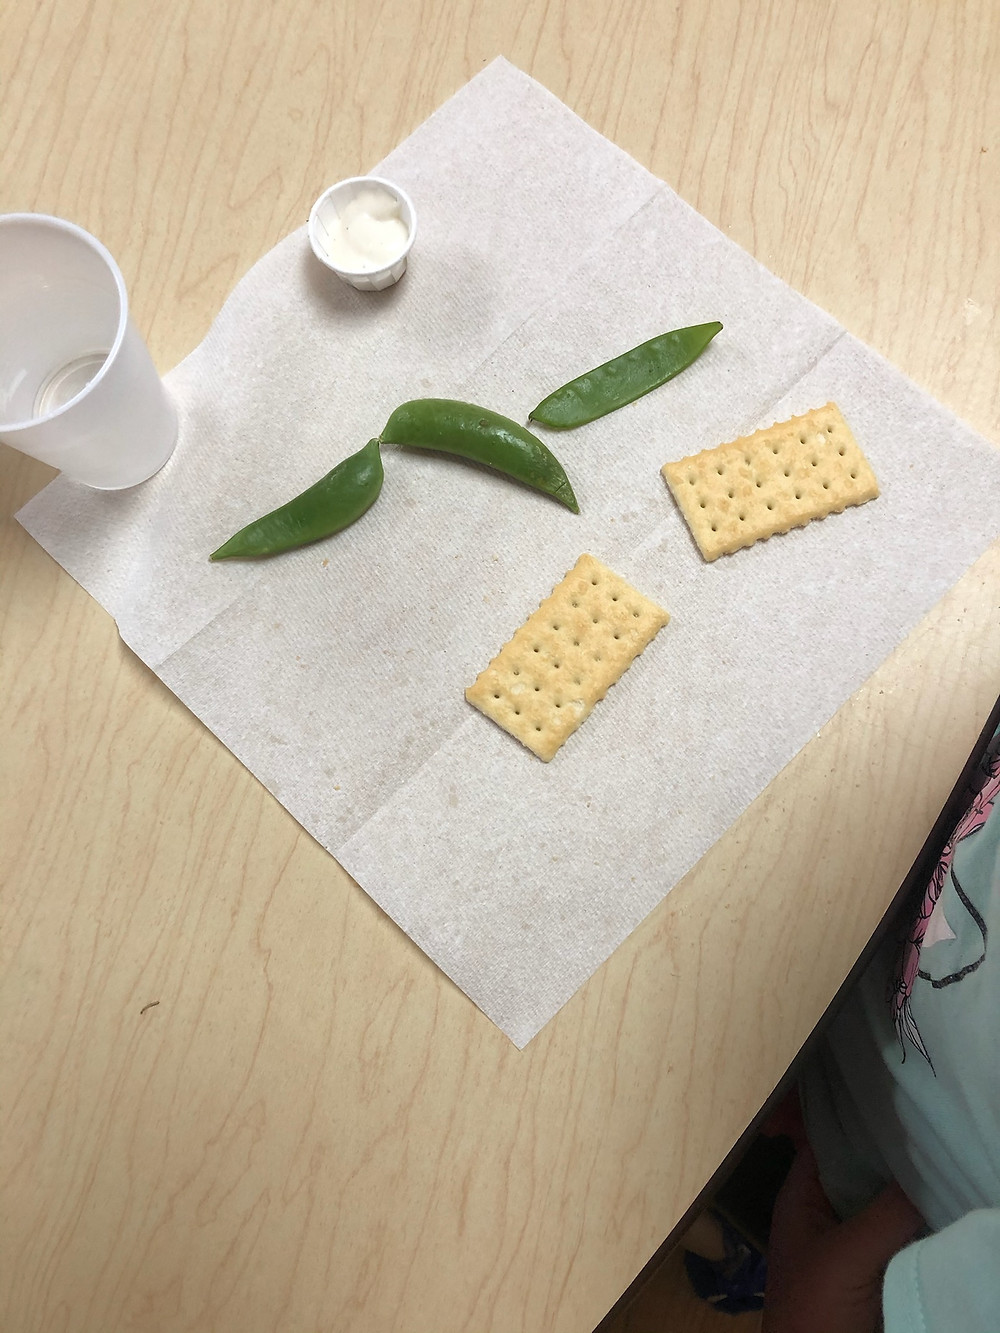 peas and crackers on napkin next to cup of water